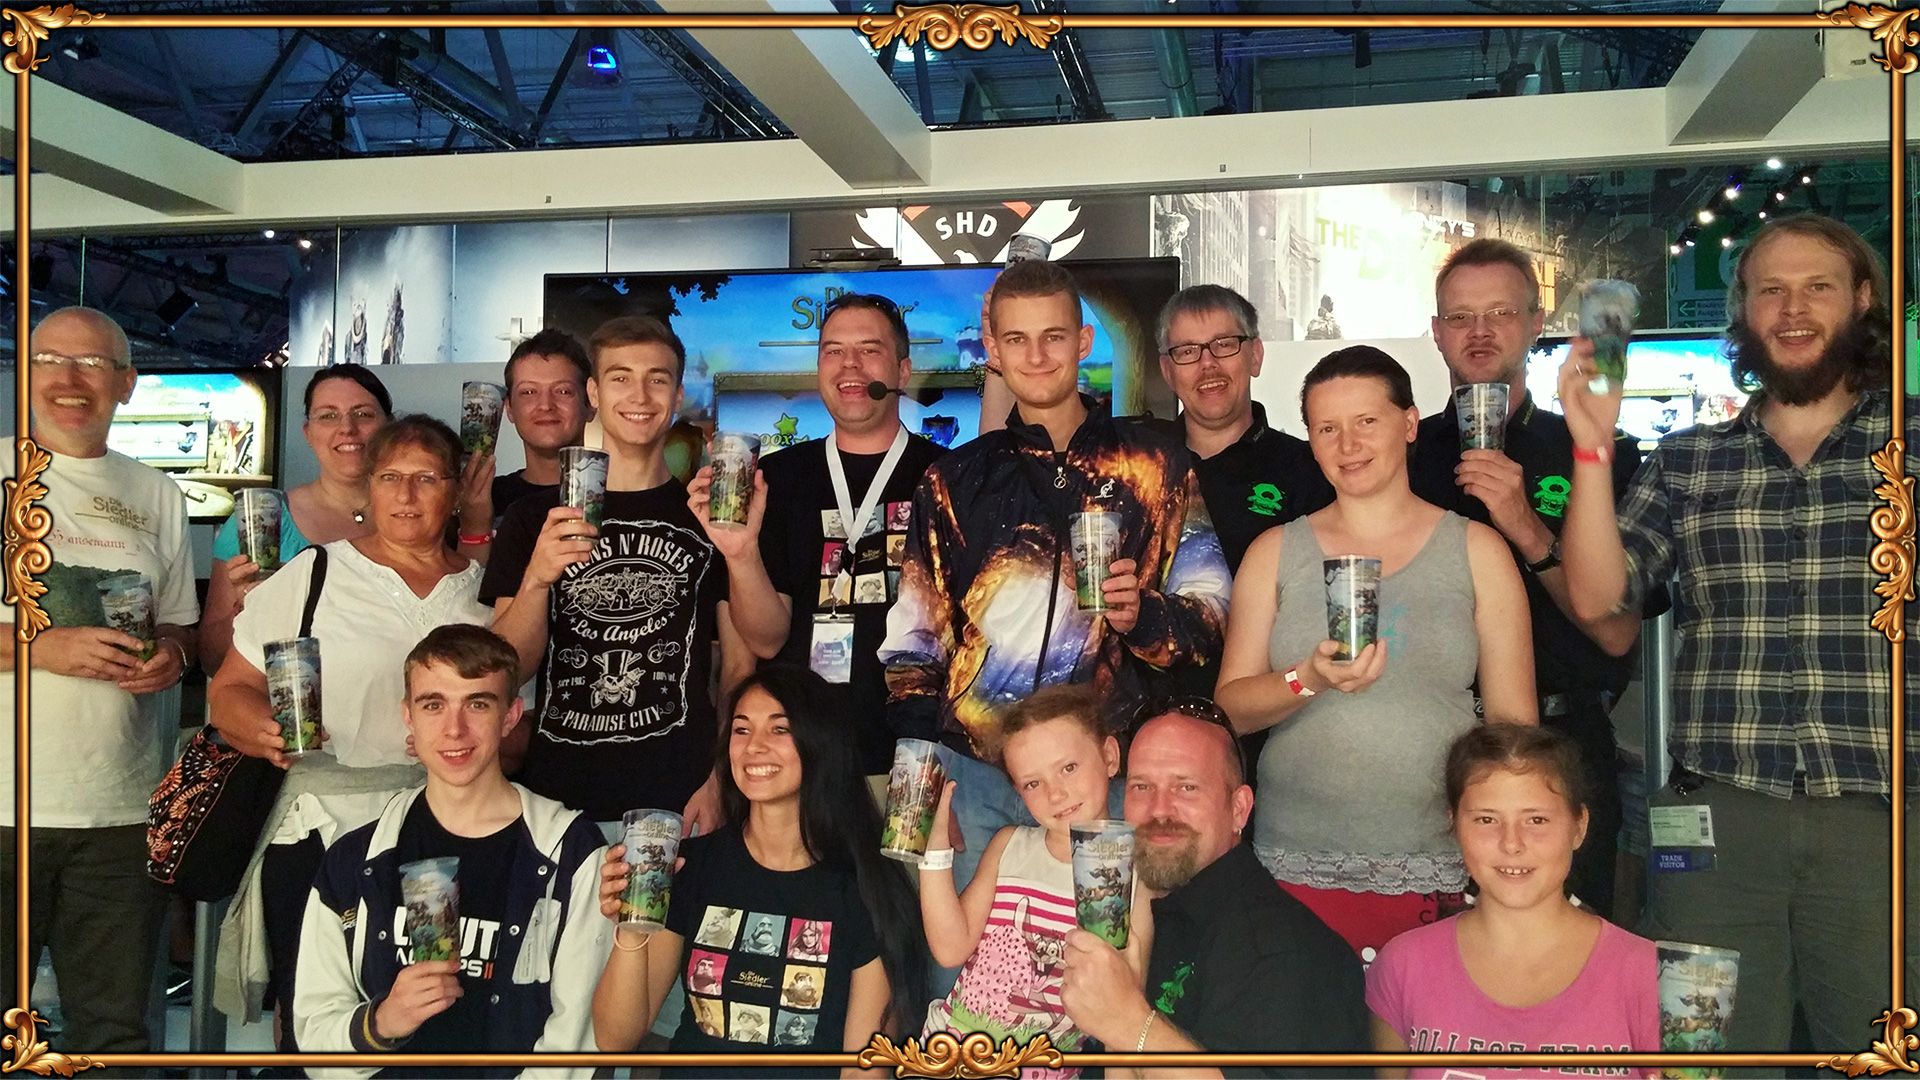 Just a few of the Settlers fans who visited us @gamescom